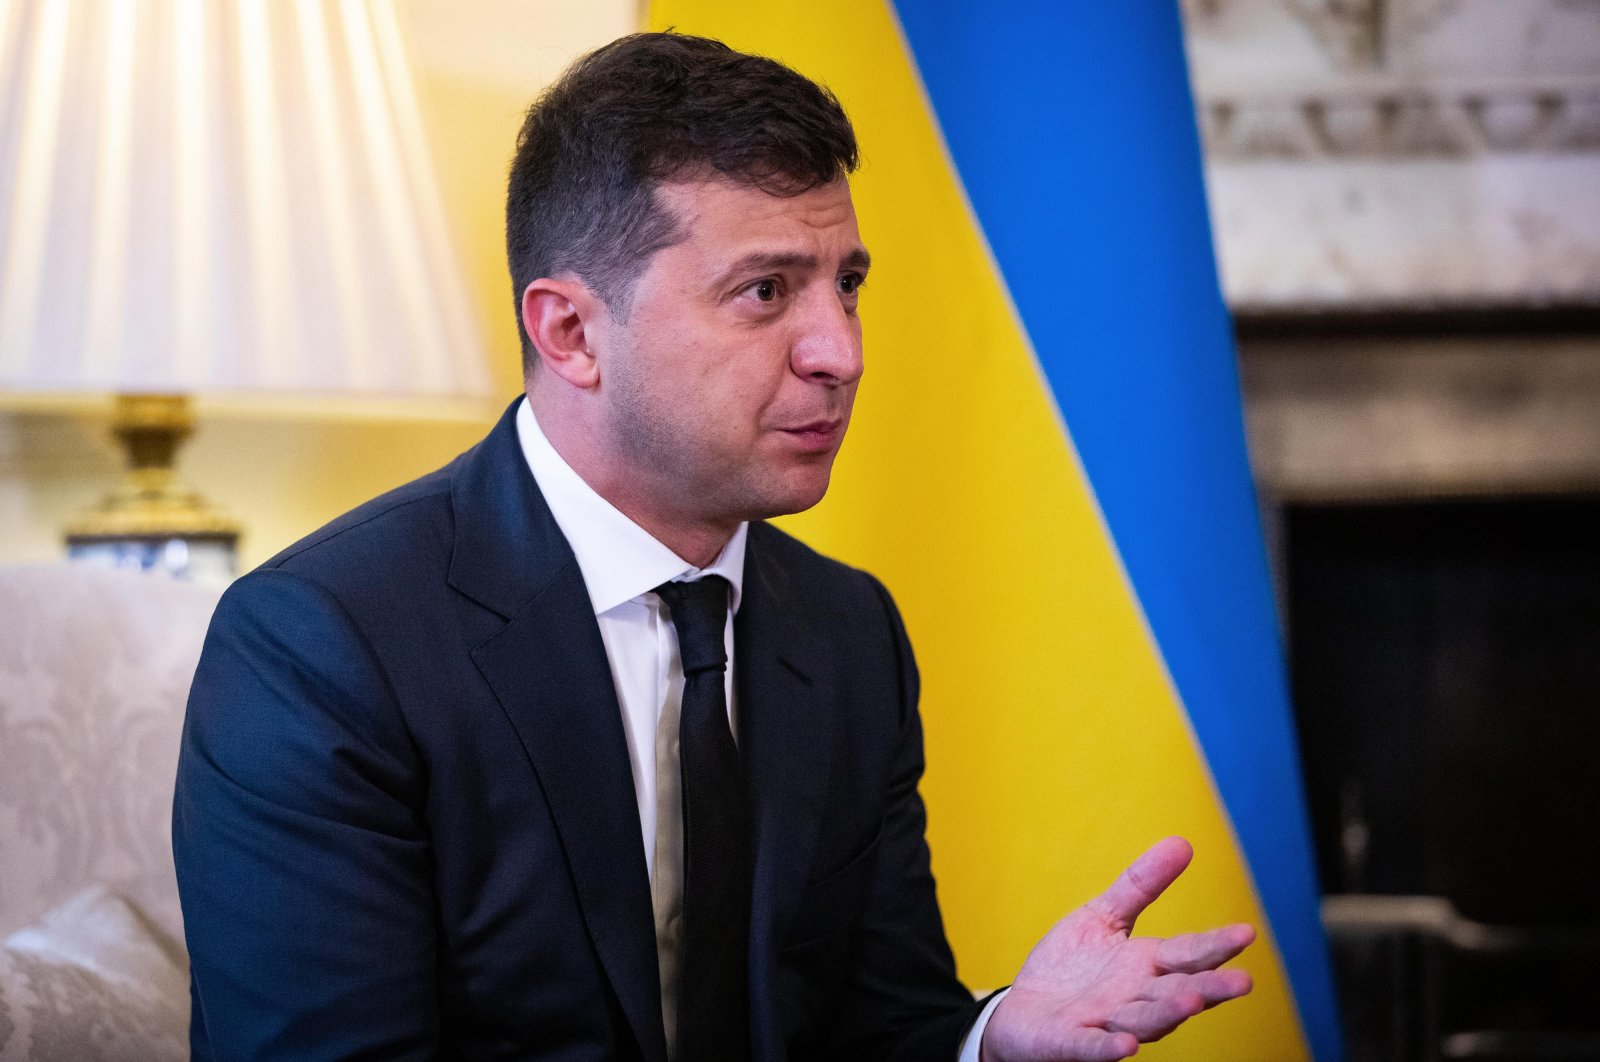 Ukraine's President Volodymyr Zelensky gestures during a meeting with Britain's Prime Minister Boris Johnson inside number 10 Downing Street, in central London on Oct. 8, 2020. (AFP Photo)